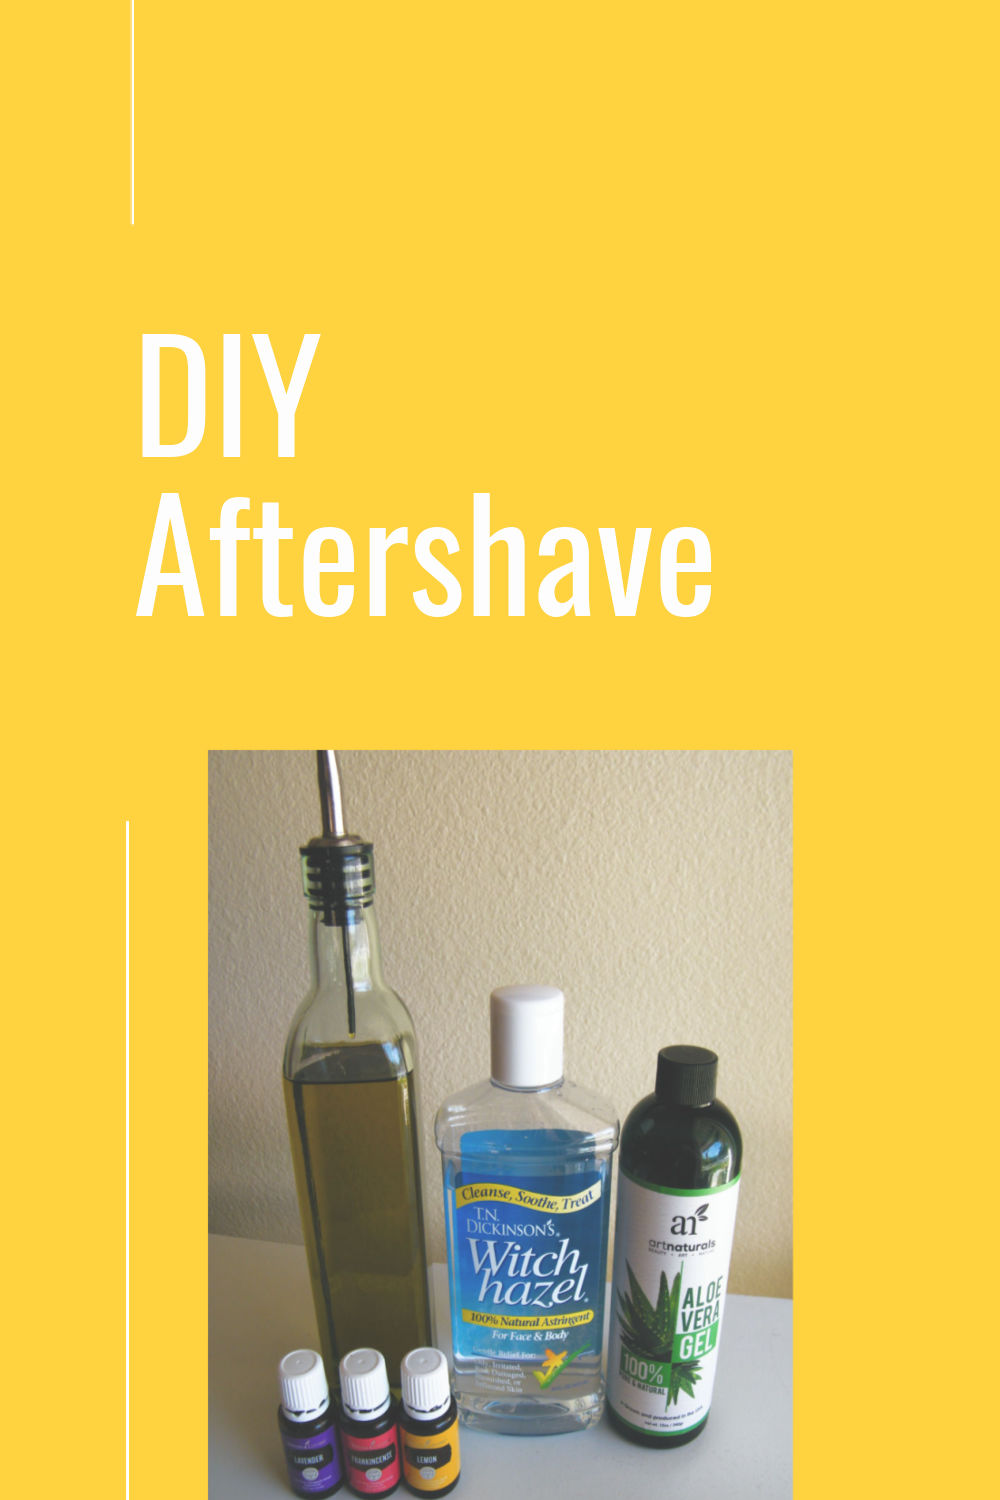 DIY aftershave made with all natural ingredients.